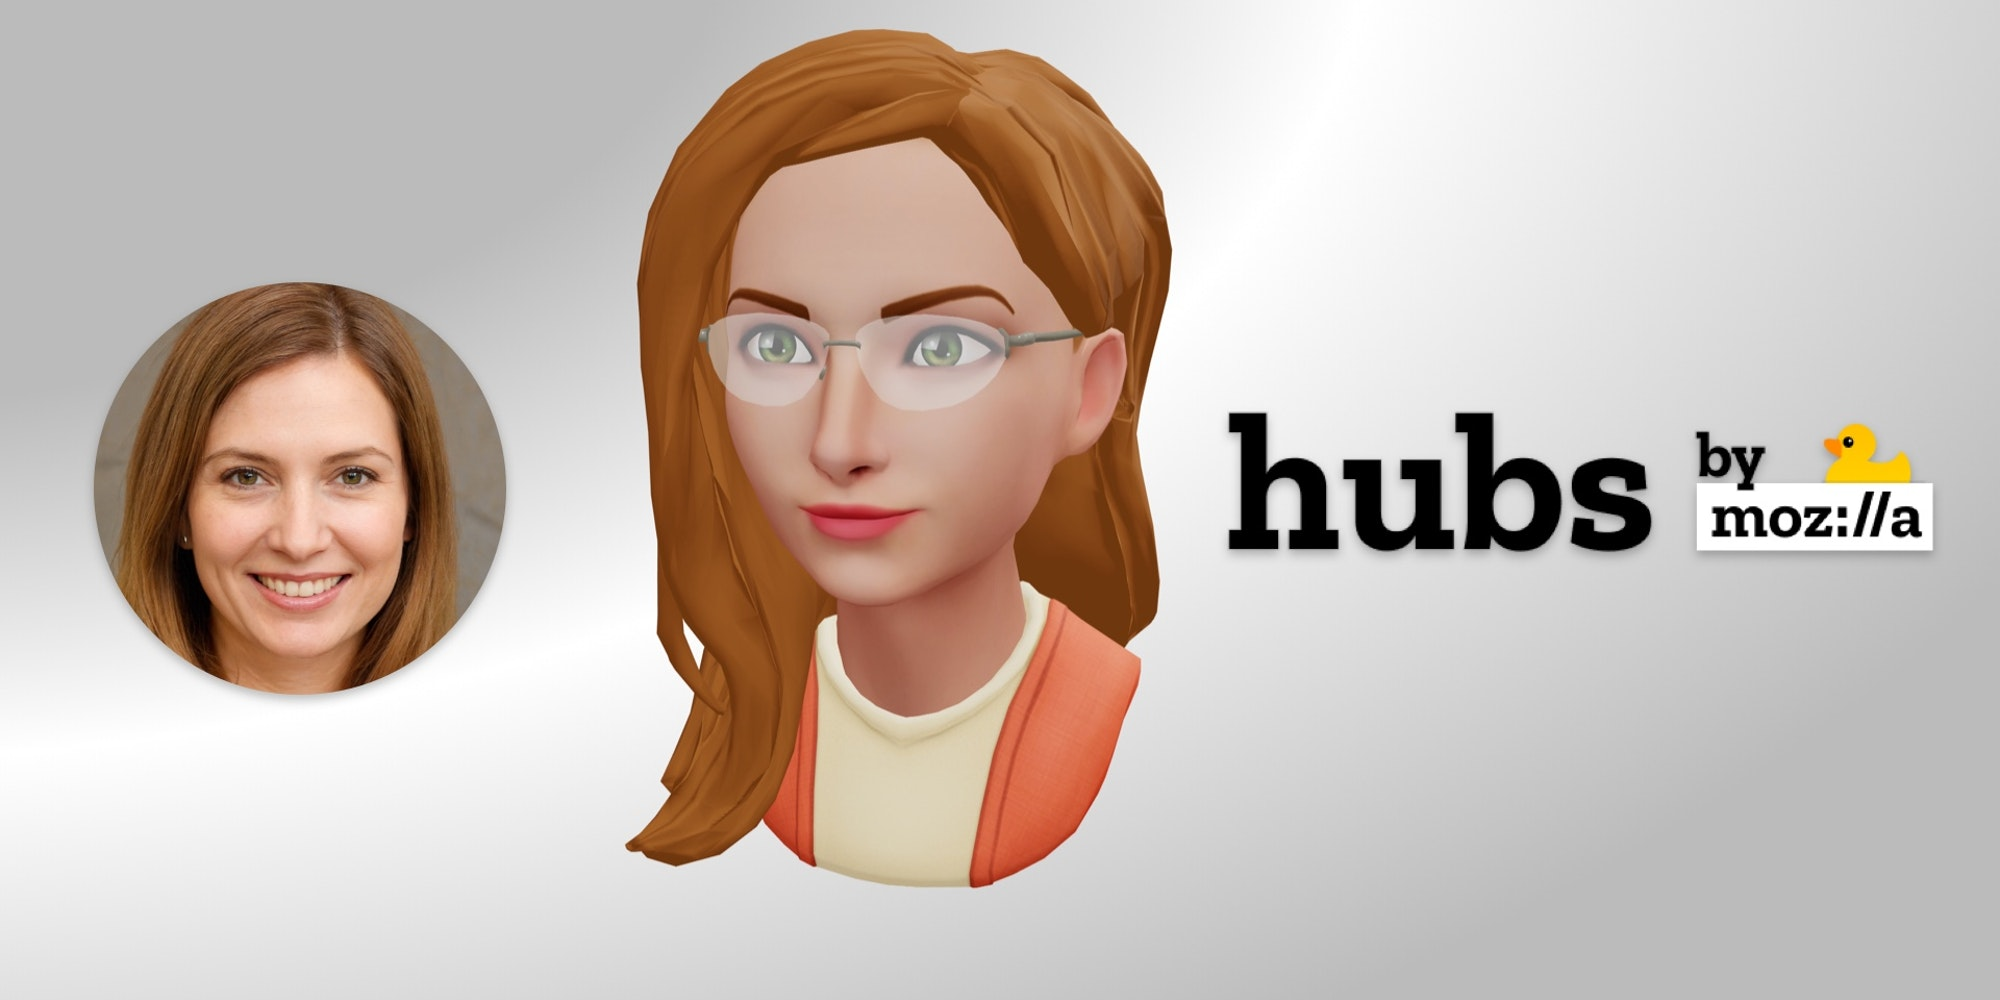 How to Create a Custom Avatar for Mozilla Hubs With the Ready Player Me Avatar Creator